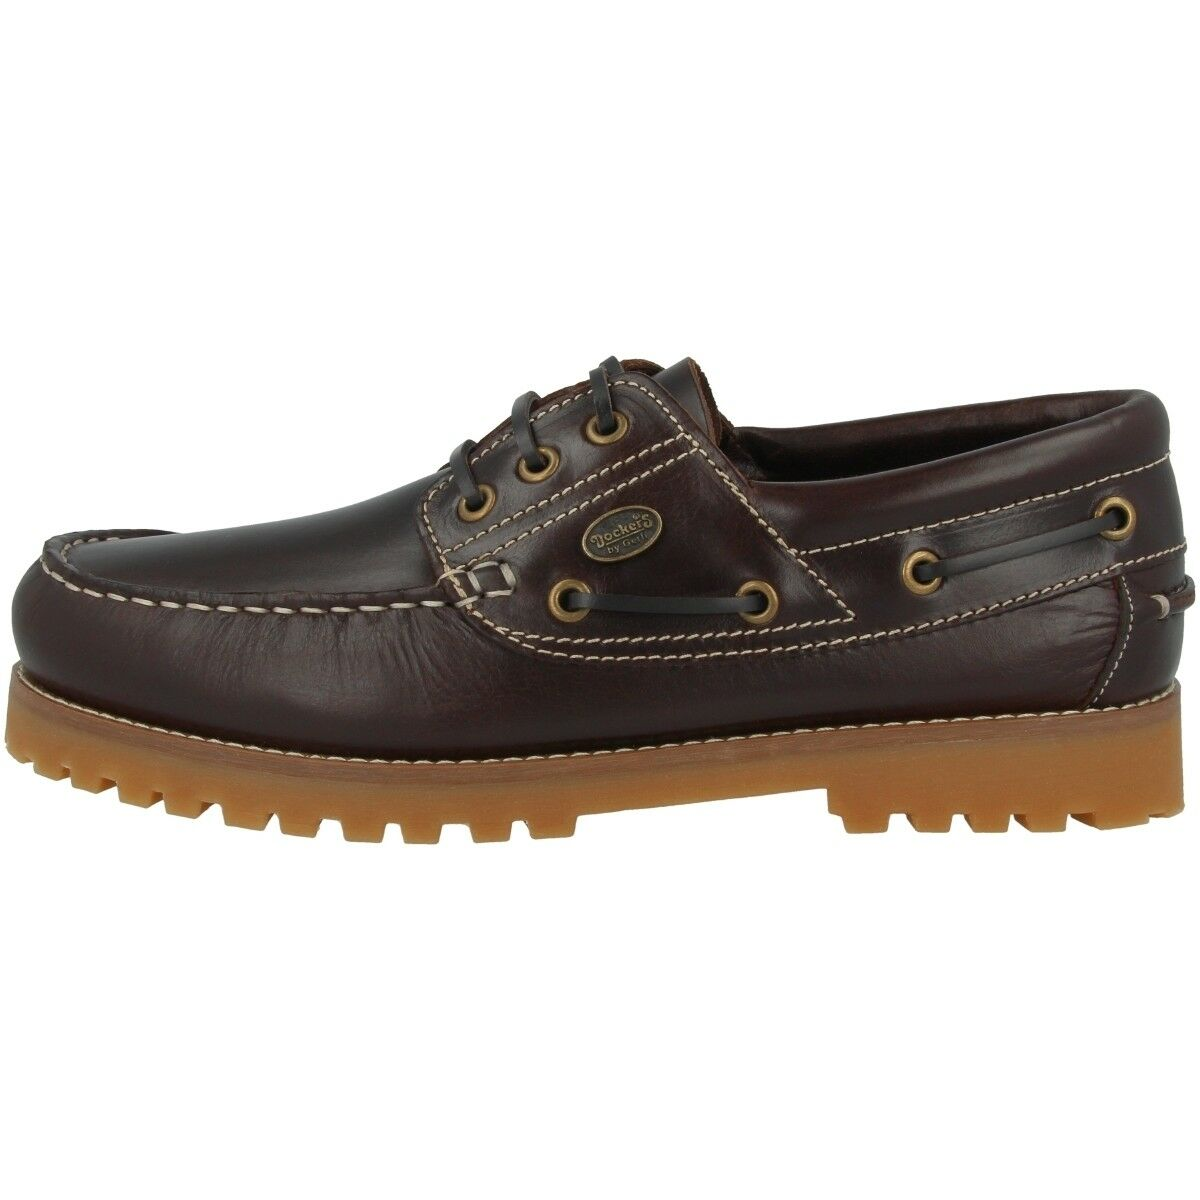 Dockers by Gerli 24dc001 Chaussures Basses bottes Chaussures baskets 24dc001-180320